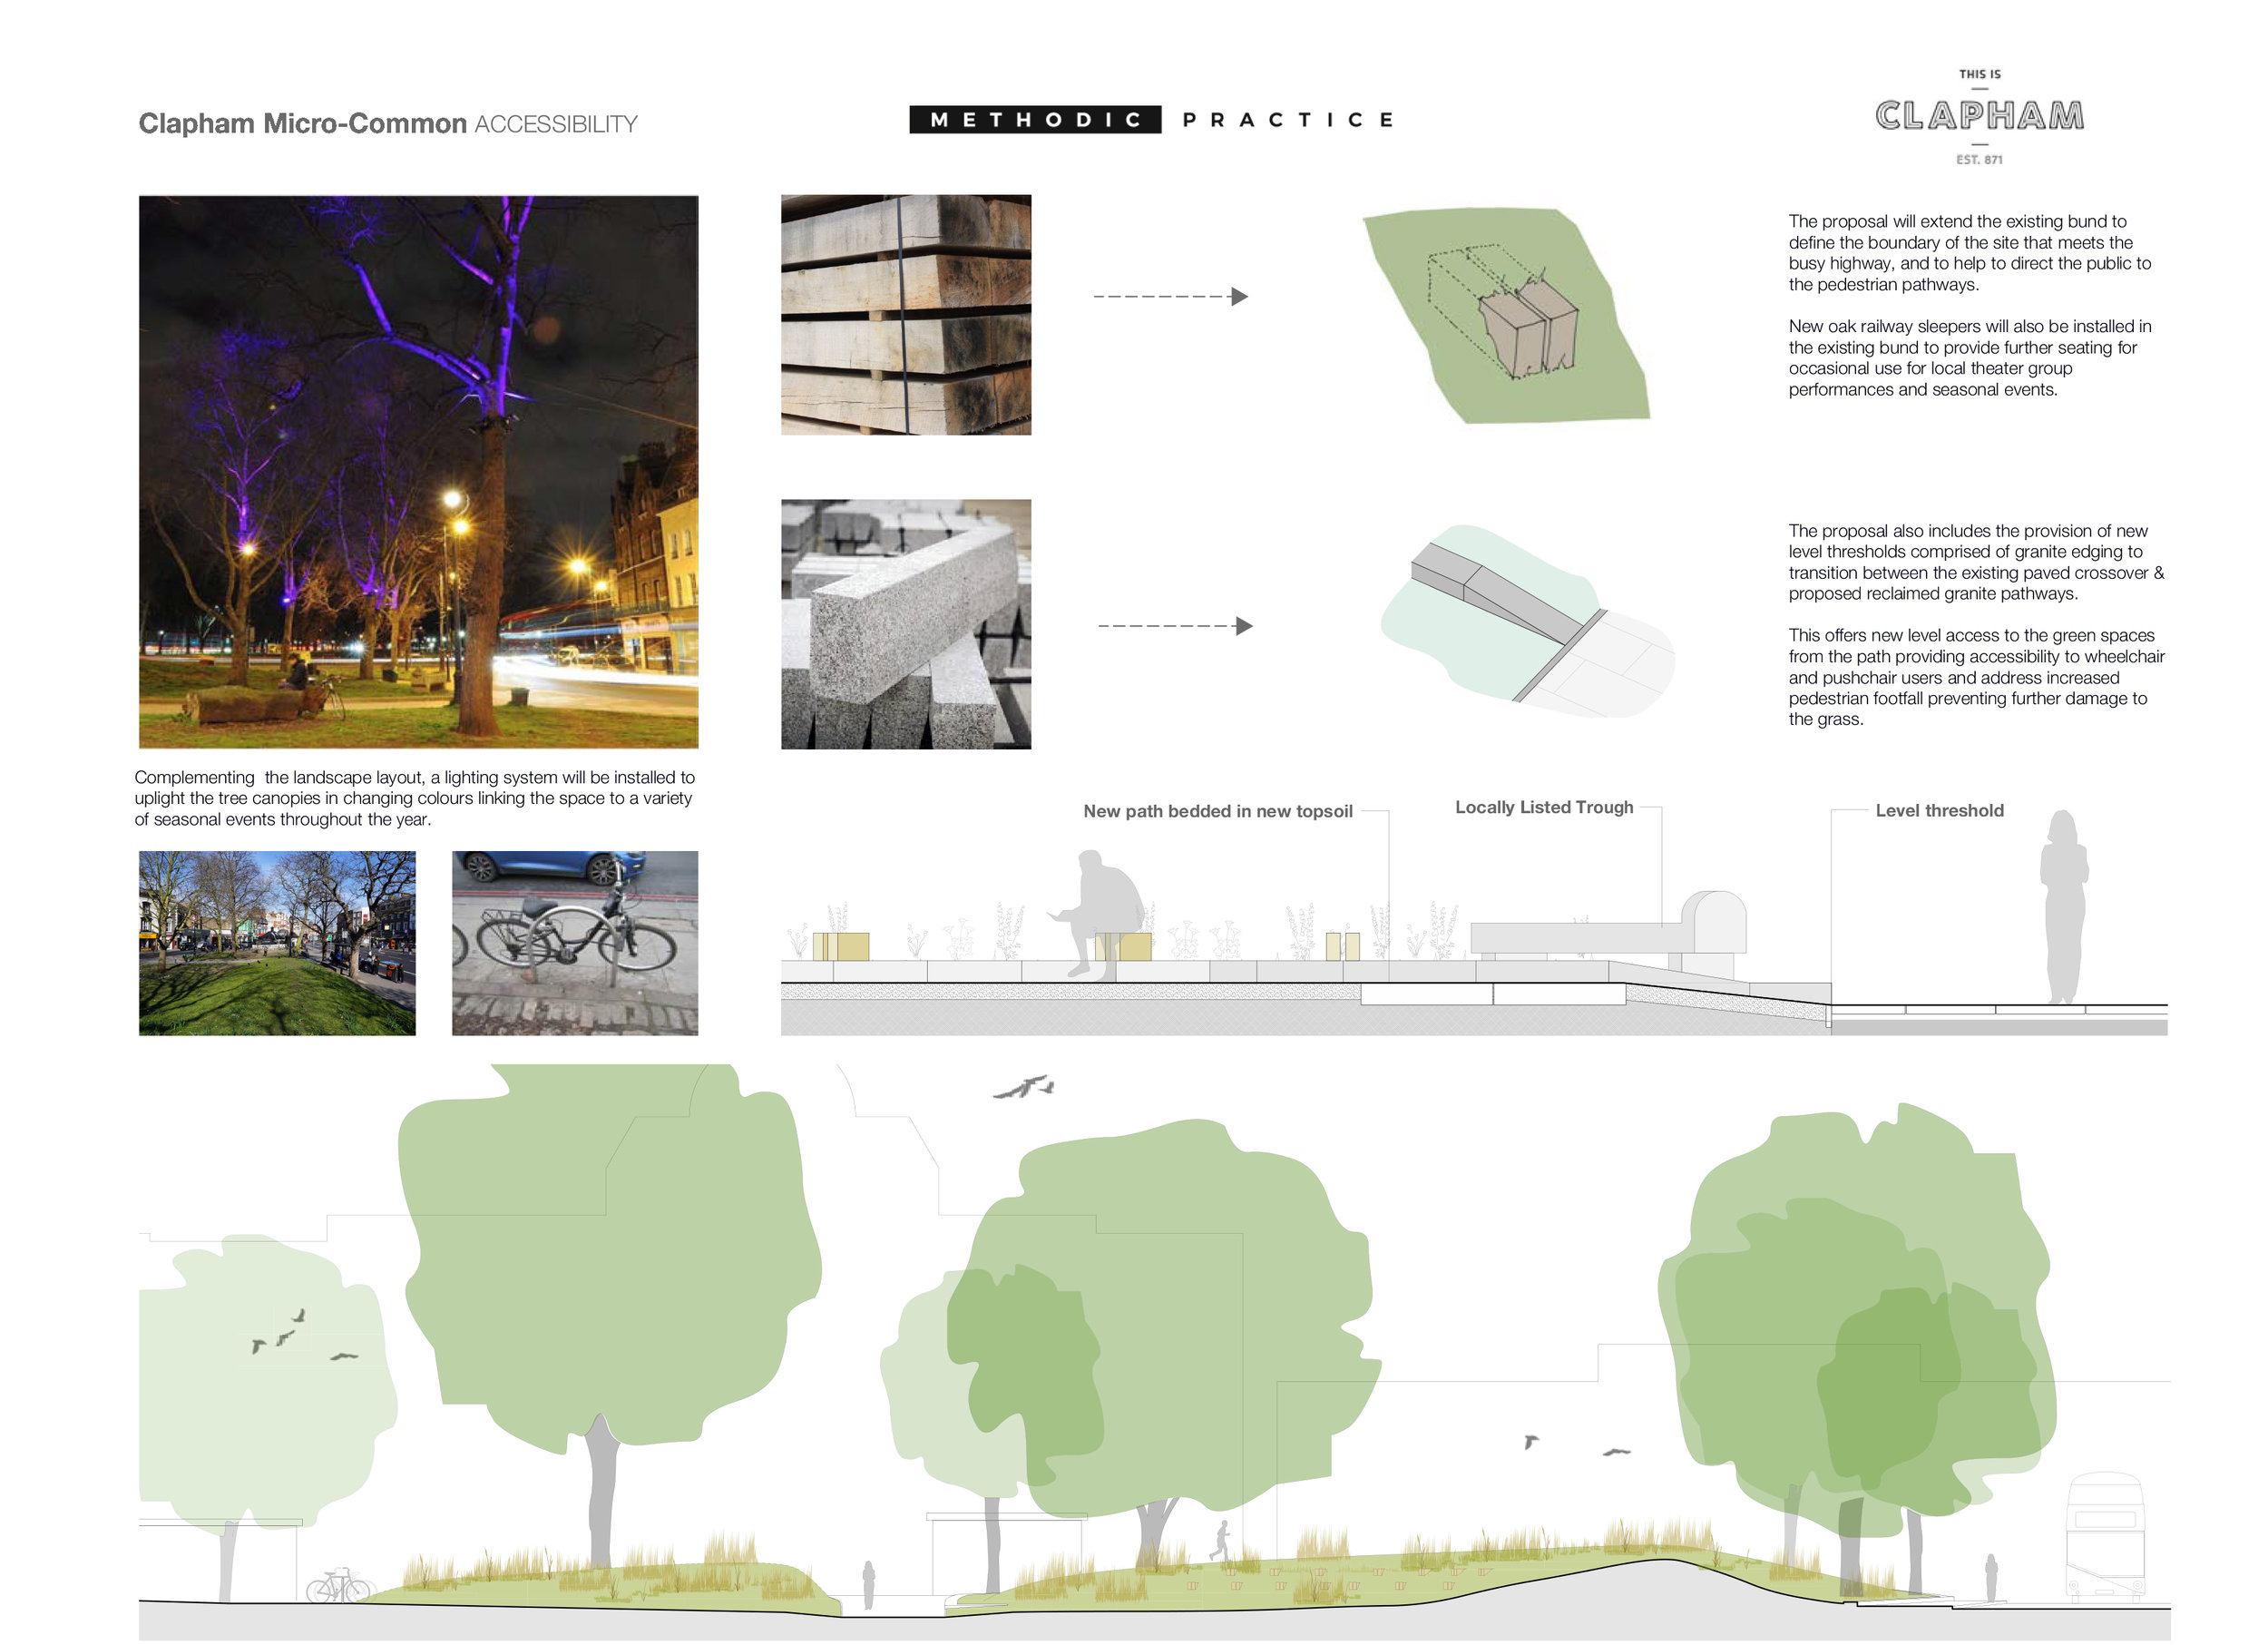 MicroCommon-Accessibility-Greener-City-Fund-sml2.jpg